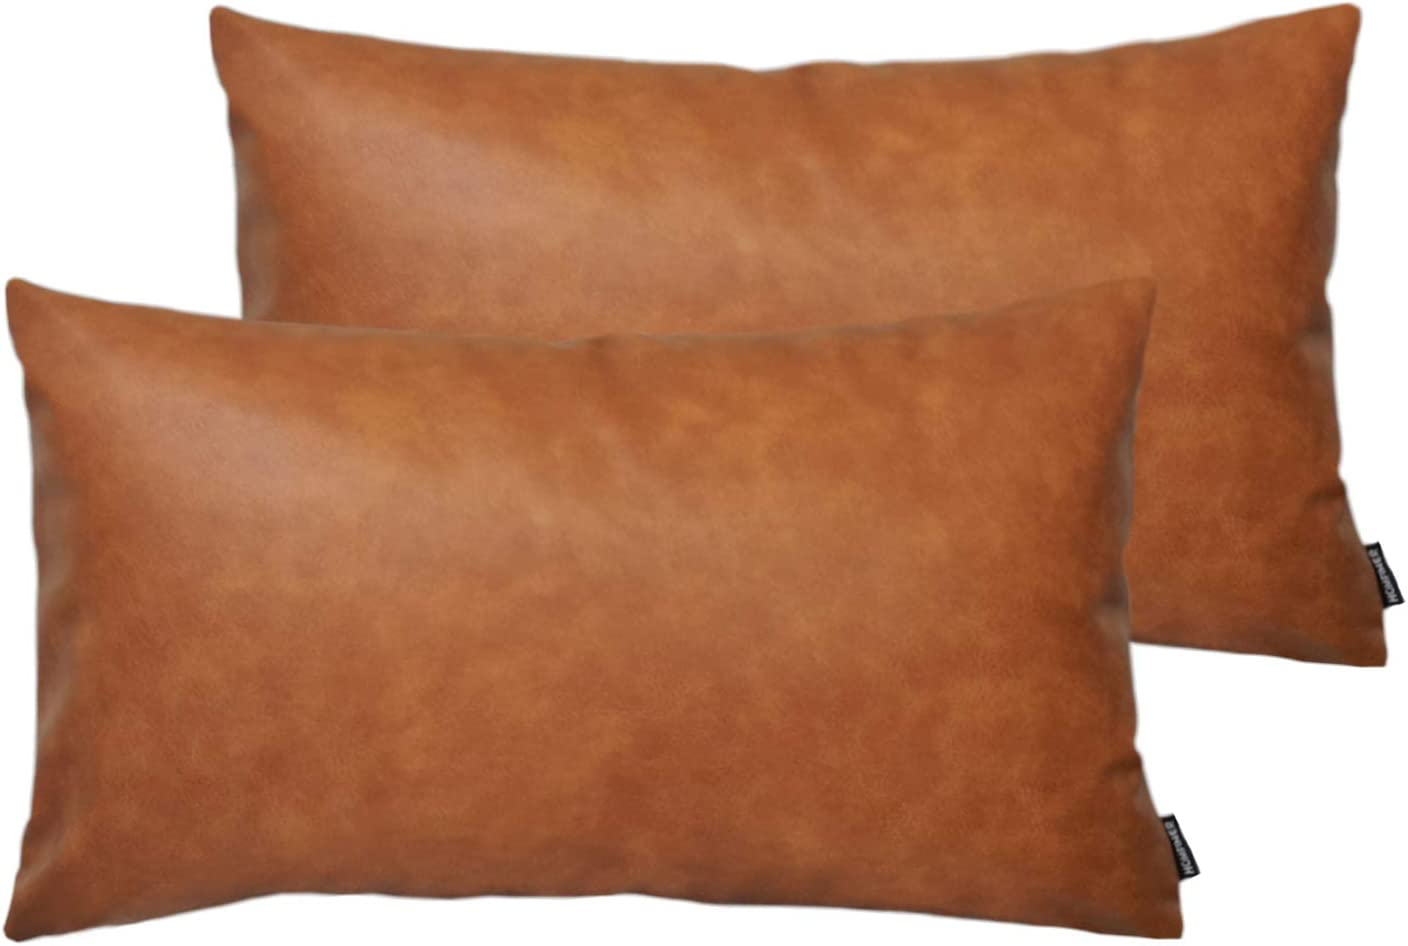 Amazon Com Homfiner Faux Leather Lumbar Throw Pillow Covers For Couch Bed Sofa Decorative 12x20 Set Of 2 Thick Modern Farmhouse Boho Small Long Accent Scandinavian Decor Rectangle Cushion Cases Cognac Brown Home